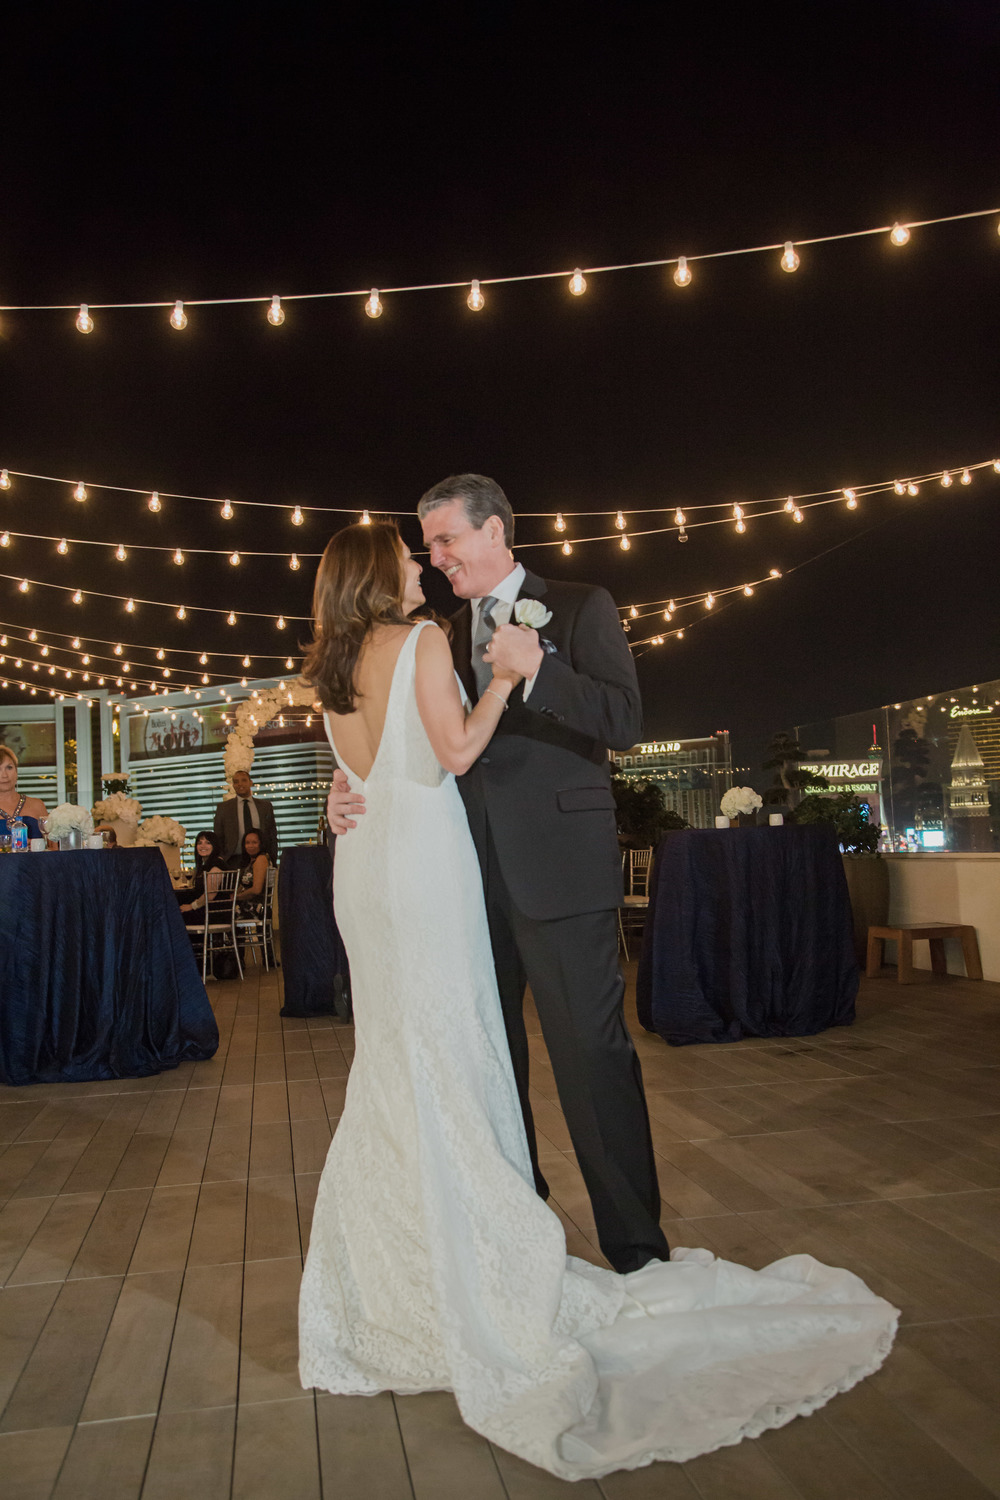 The first dance beneath the starts and bistro lights.   White flowers and white centerpieces on dark blue linens.   Vendor Credits:    Wedding in the   Nobu Villa    |    Las Vegas Wedding Planner   Andrea Eppolito     |    Photography by   Adam Frazier    |    Videography by   Pure Light Creative    |    Floral and Decor by   Destinations by Design    |  Lighting by LED Unplugged  |    Music by   DJ Mike Fox